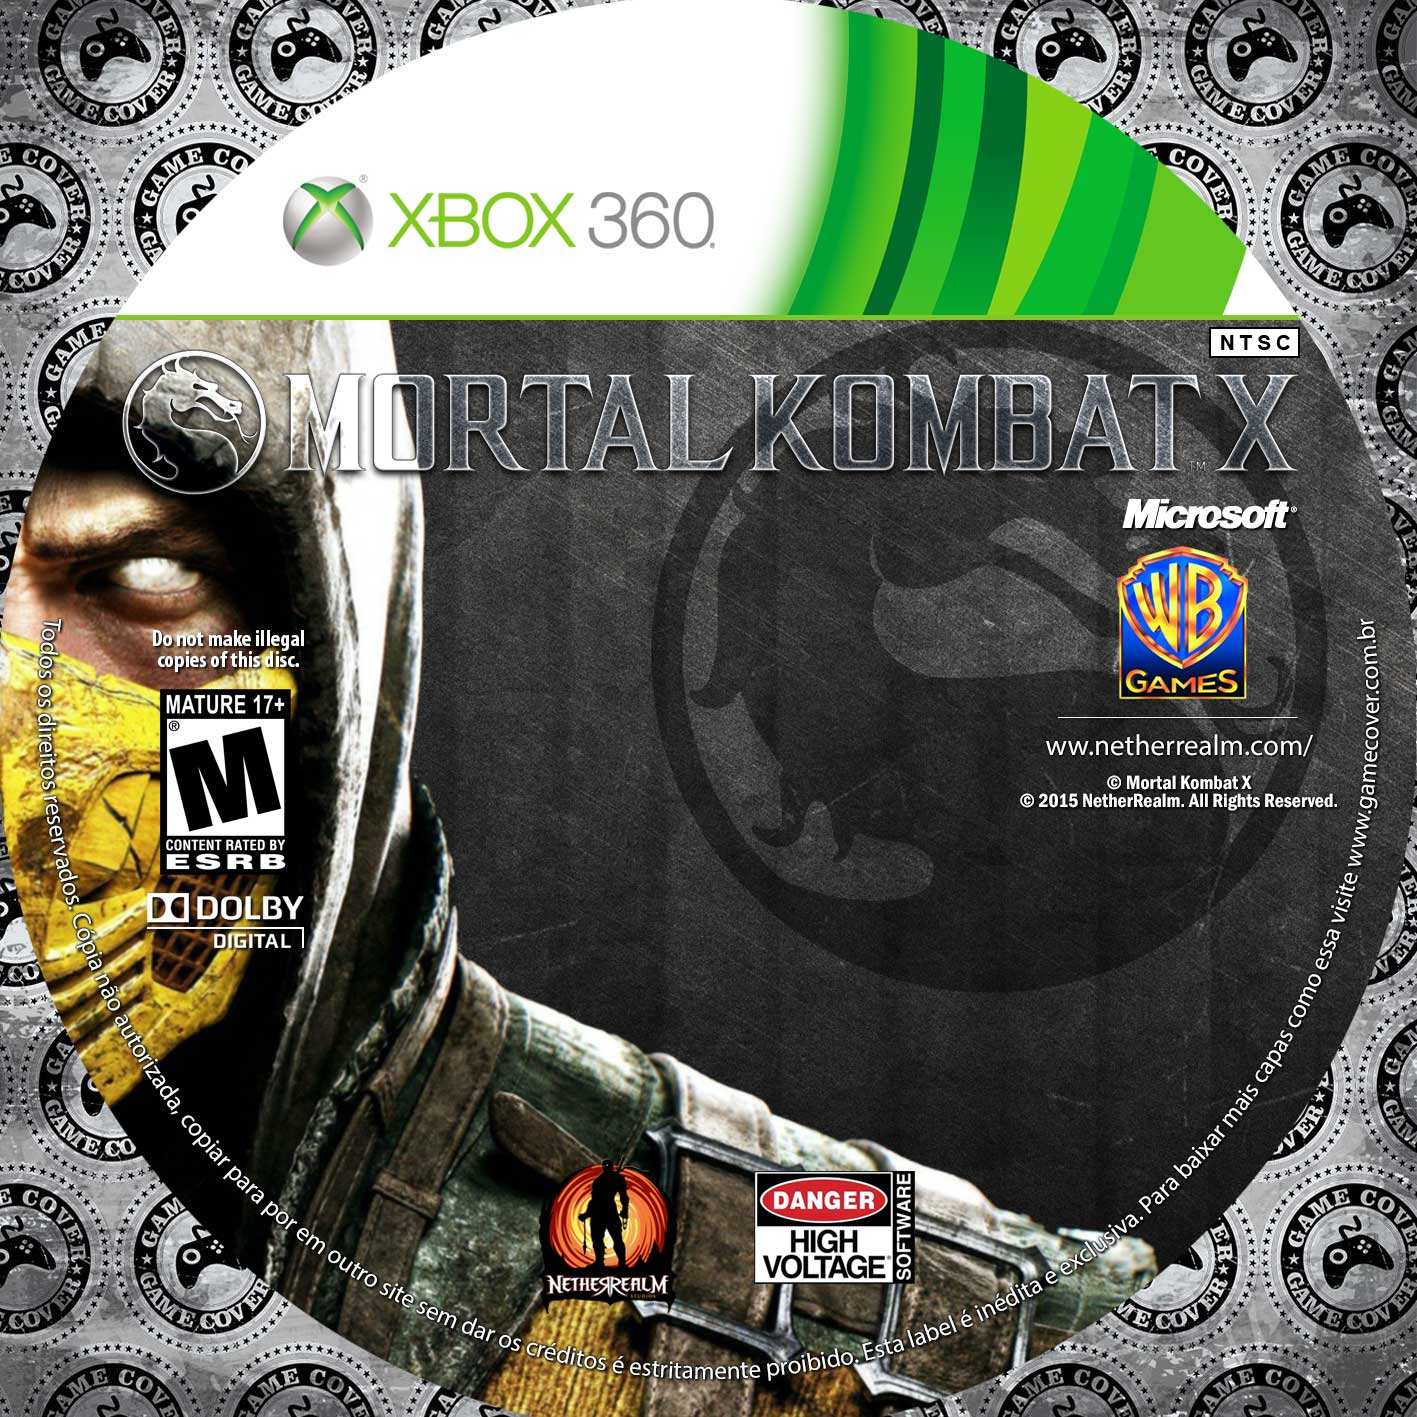 Label Mortal Kombat X Xbox 360 [Exclusiva]